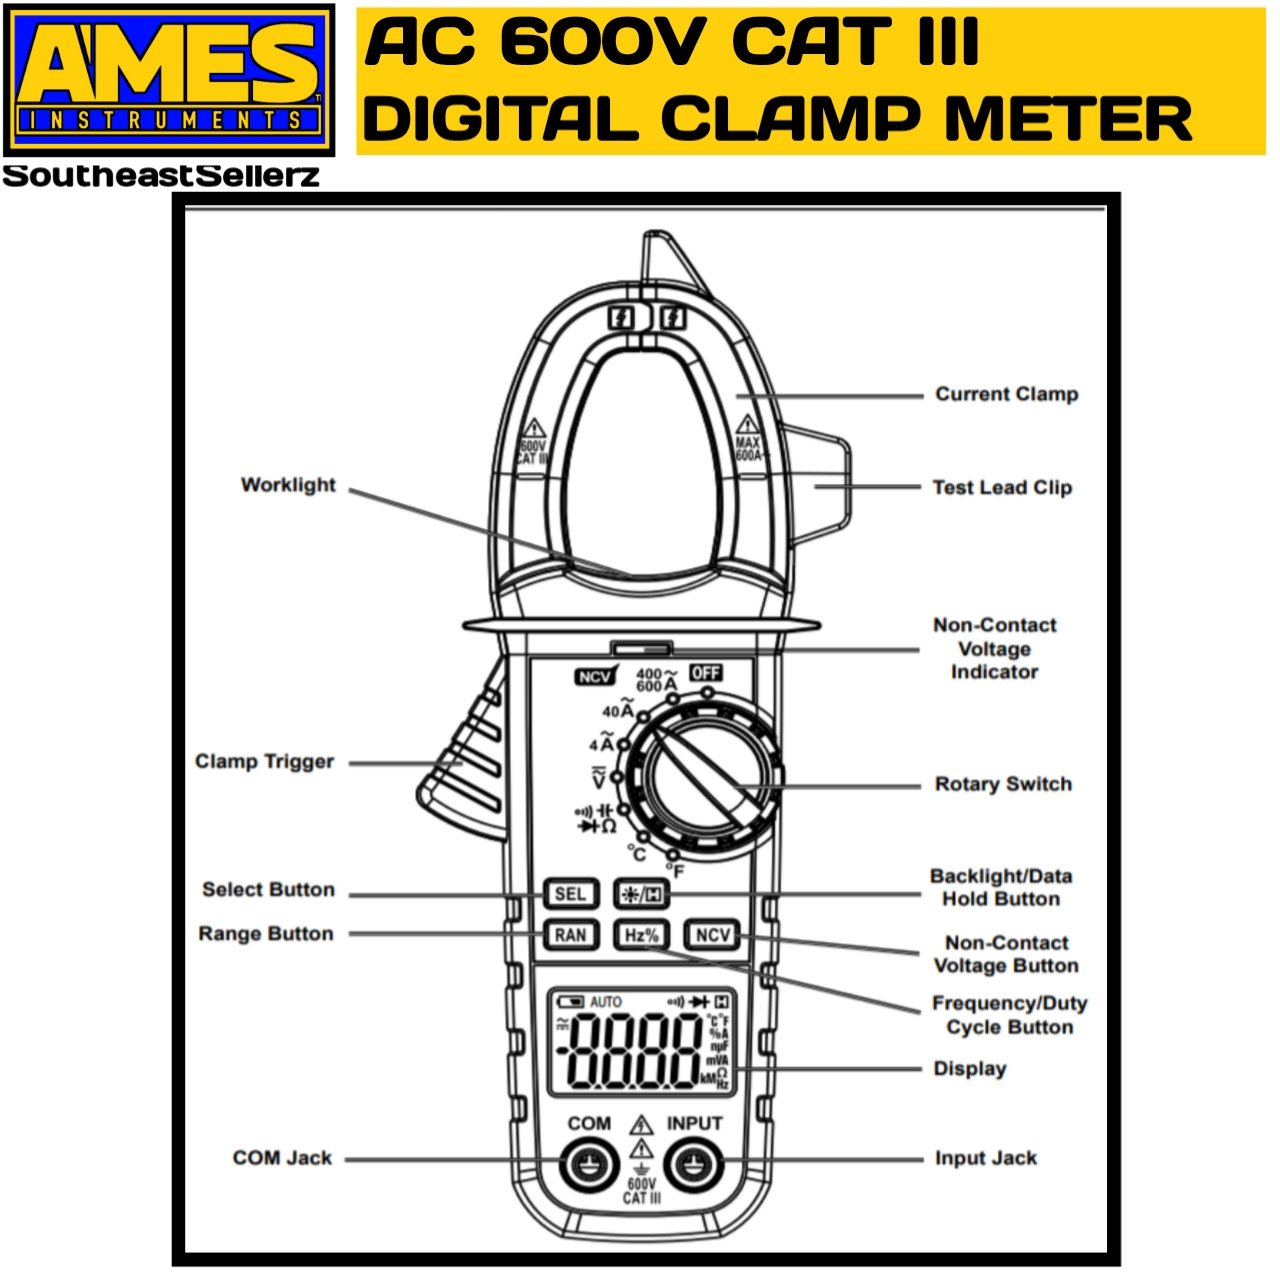 Ames 600A AC Clamp Meter - - Amazon.com